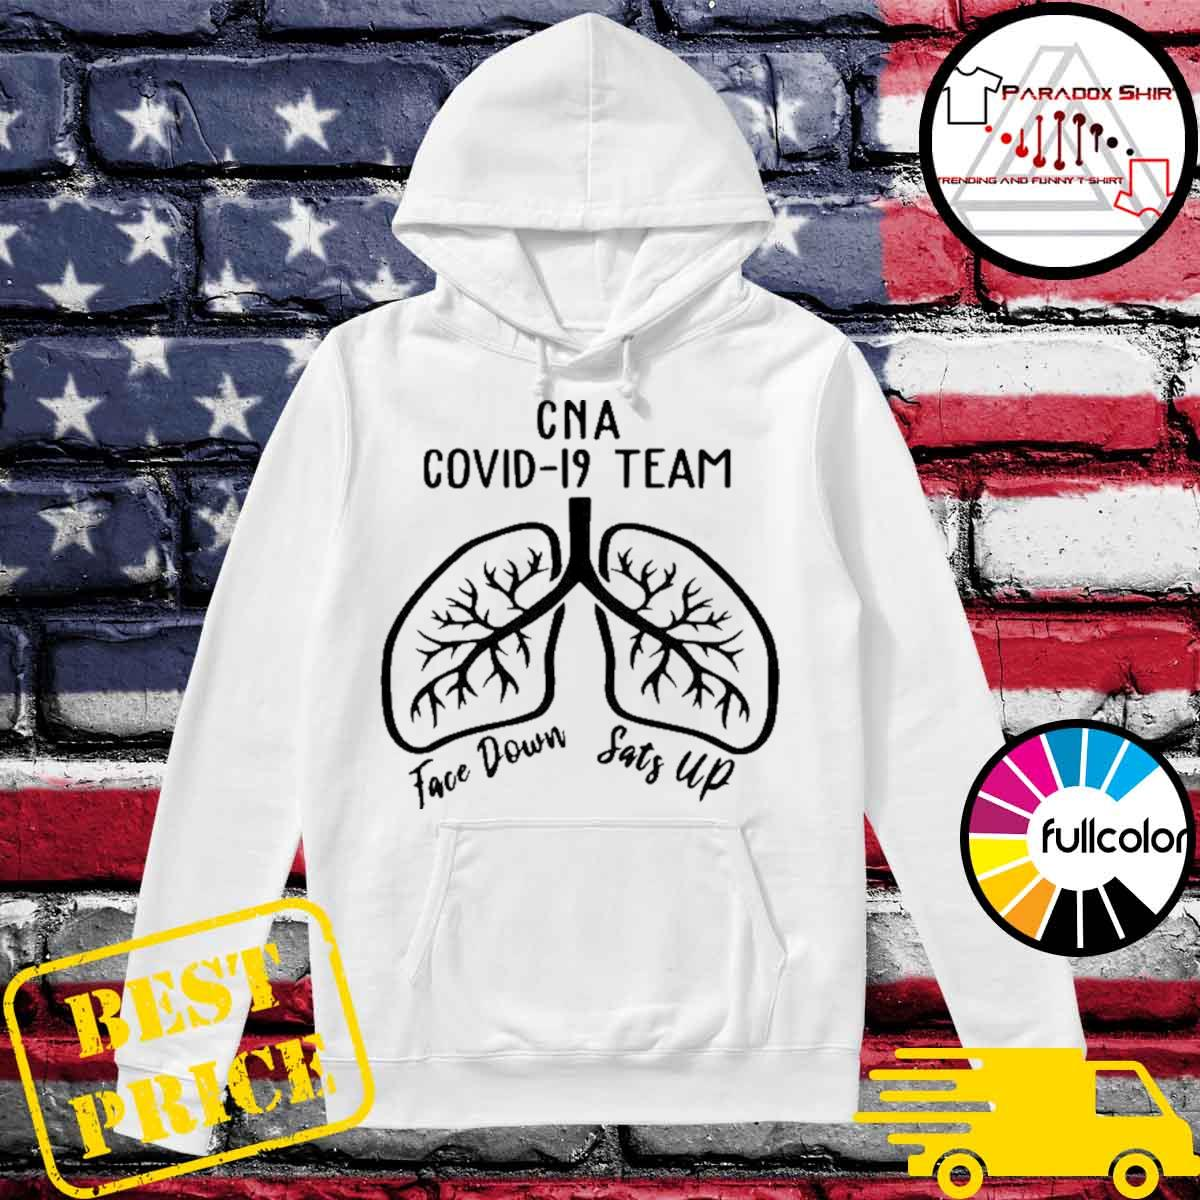 Cna covid 19 team face down sats up s Hoodie